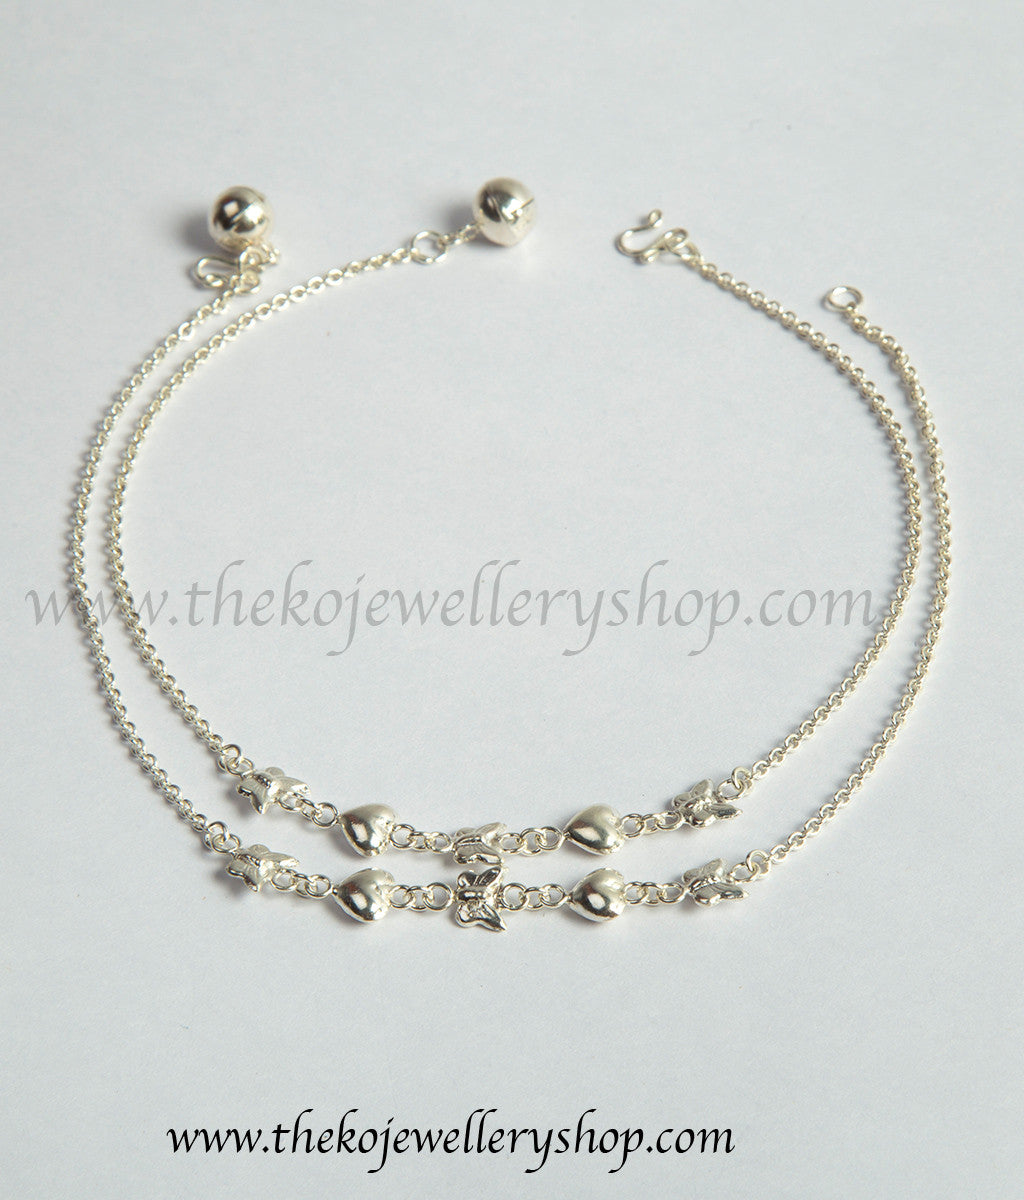 anklet chain ankle sstr jewelry silver italy sterling bracelet anklets bling singapore twisted